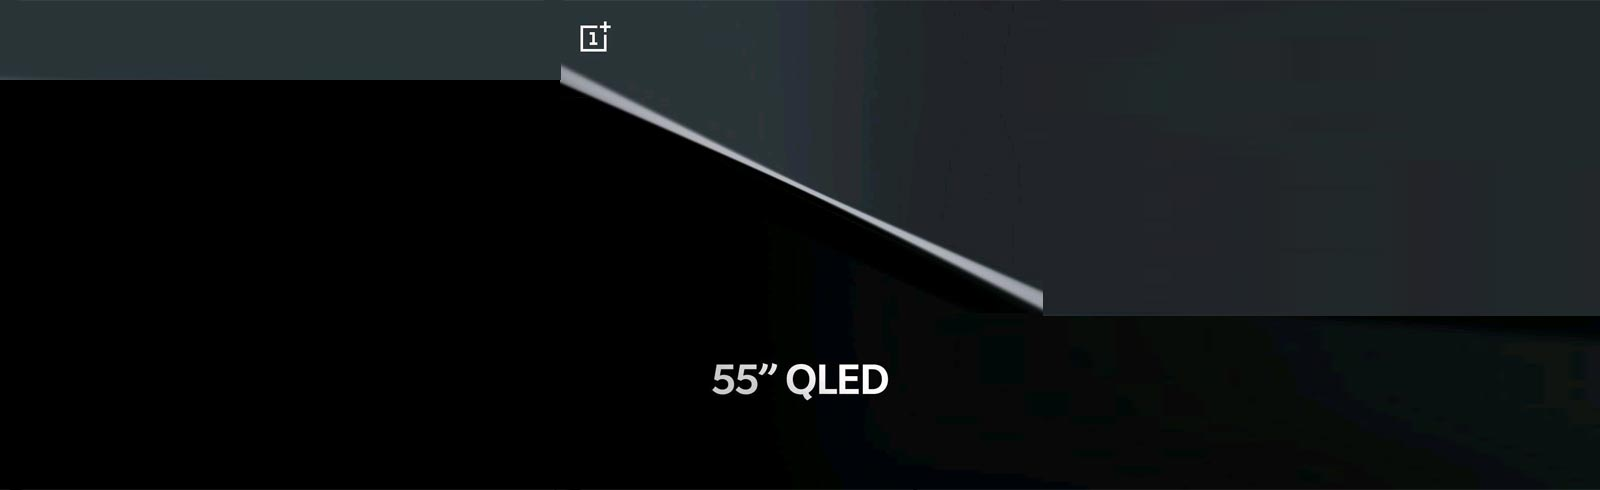 The OnePlus TV with a 4K QLED panel will have a 55-inch diagonal size